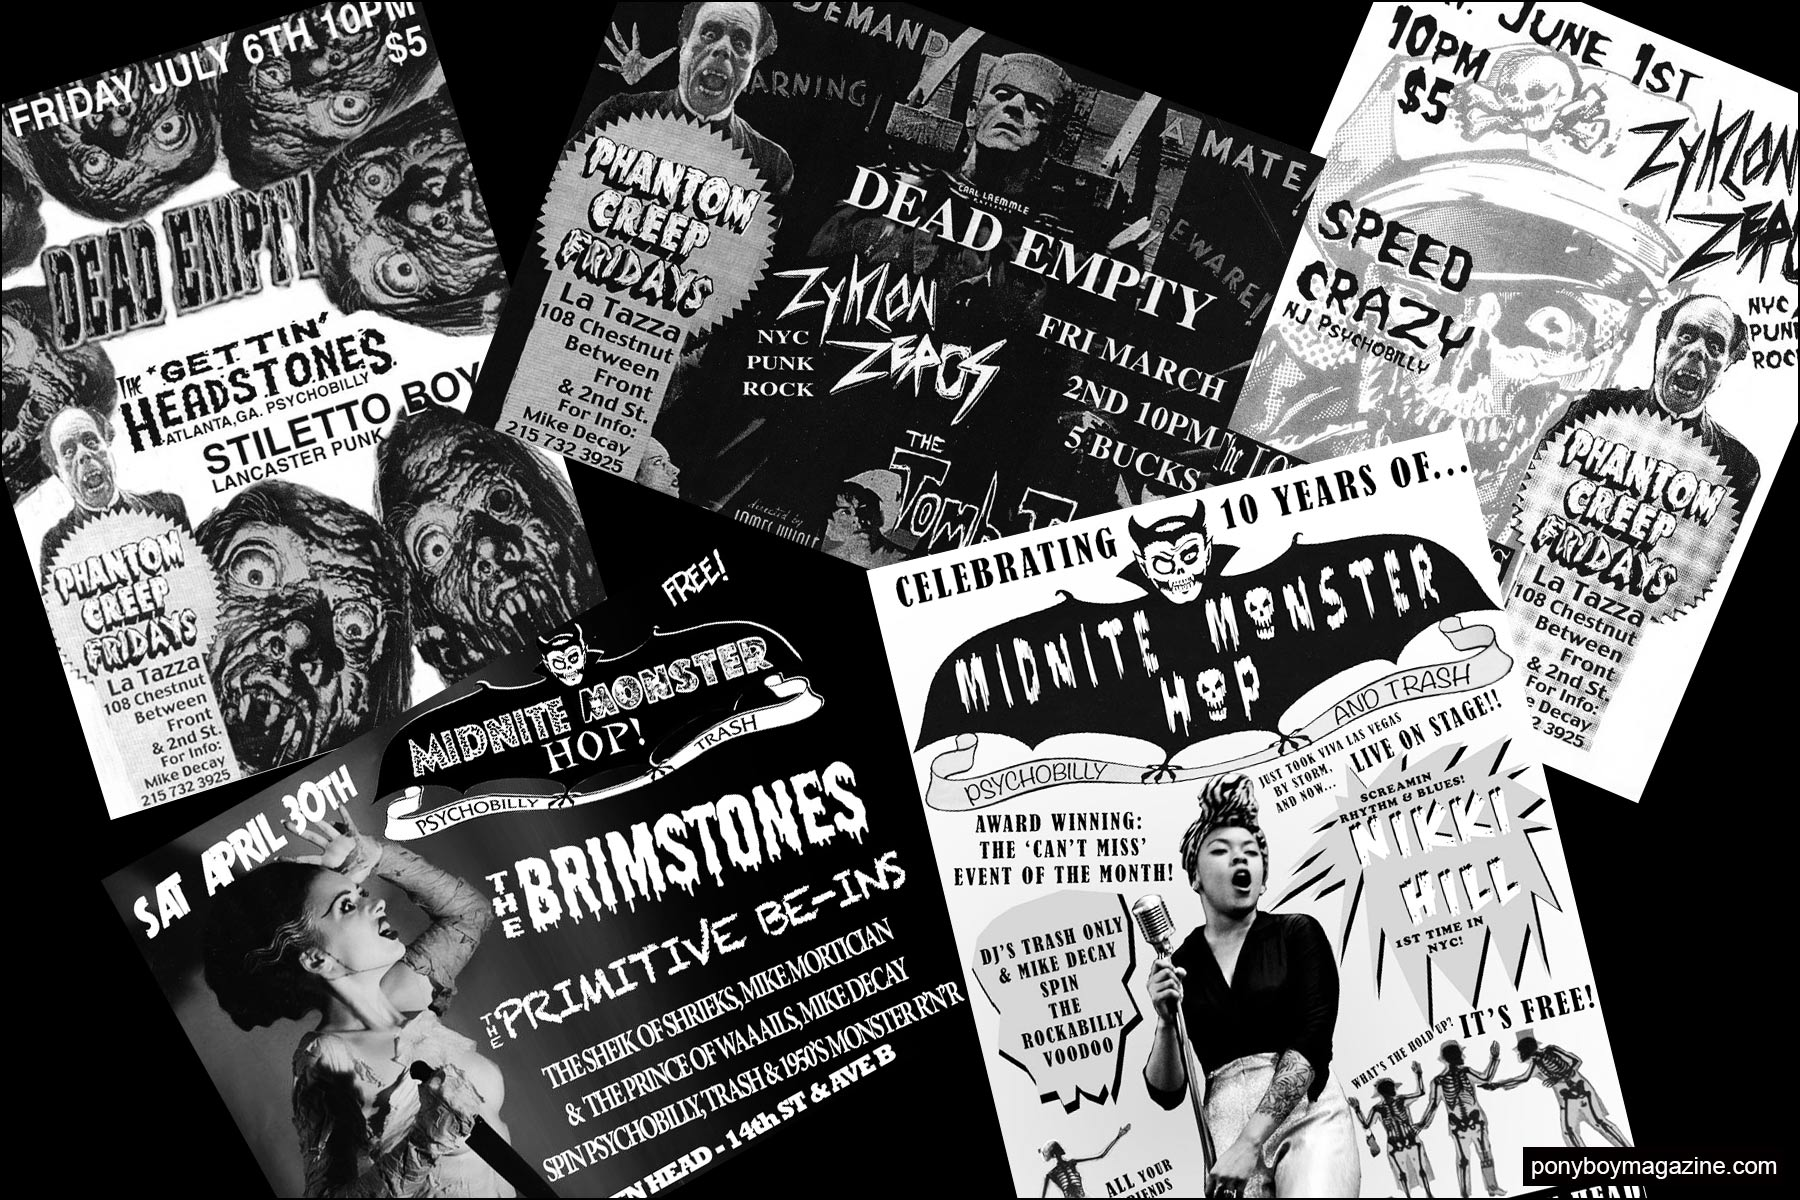 Incredible flyers from New York City party Midnite Monster Hop. Ponyboy magazine NY.